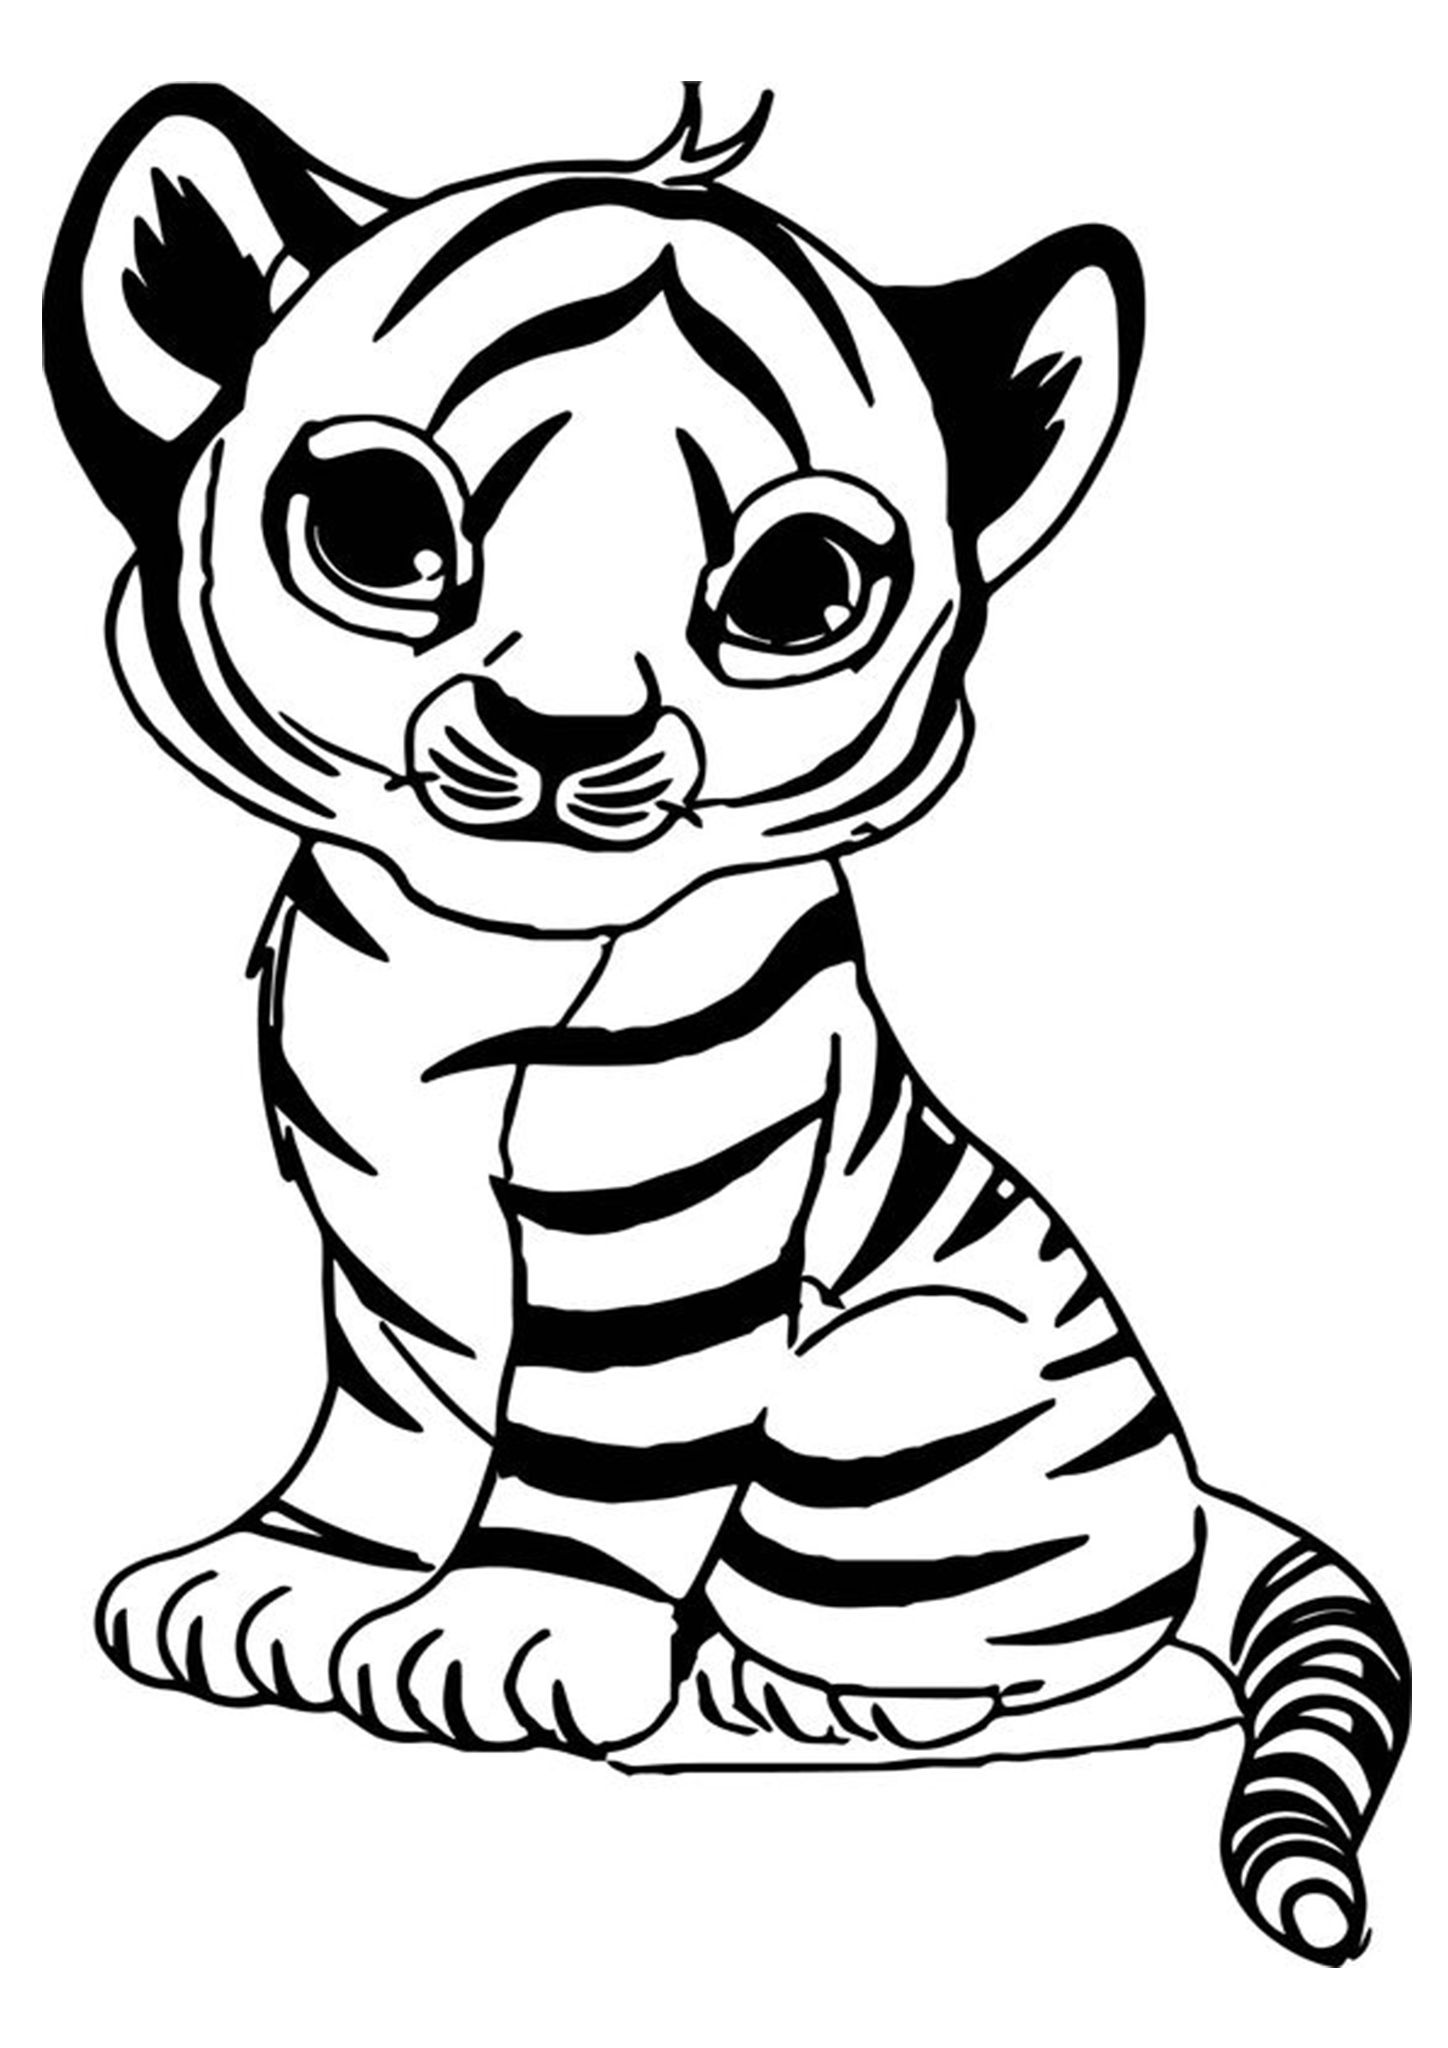 Free Easy To Print Tiger Coloring Pages Zoo Animal Coloring Pages Zoo Coloring Pages Animal Coloring Pages